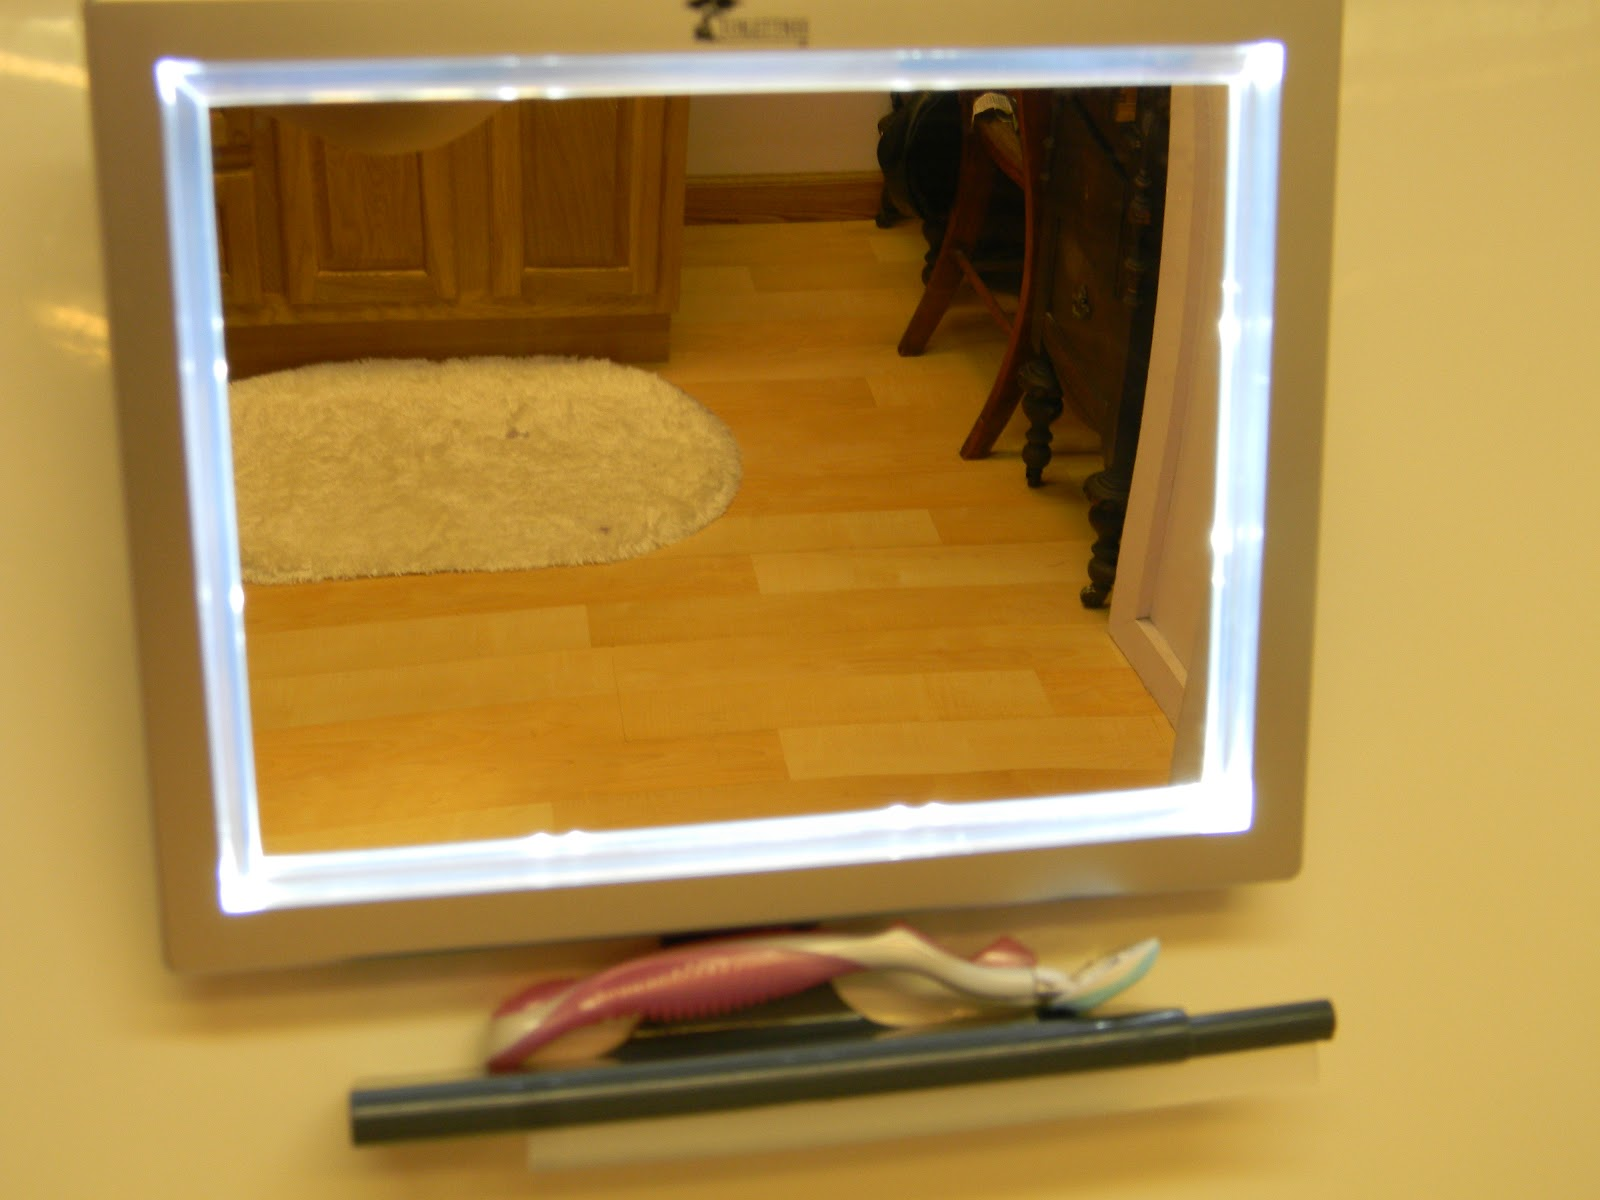 Superieur ToiletTree Allowed Me To Select A Product To Review And I Chose Their  Deluxe LED Fogless Shower Mirror Pictured Above. It Is A Great Addition To  My Shower, ...